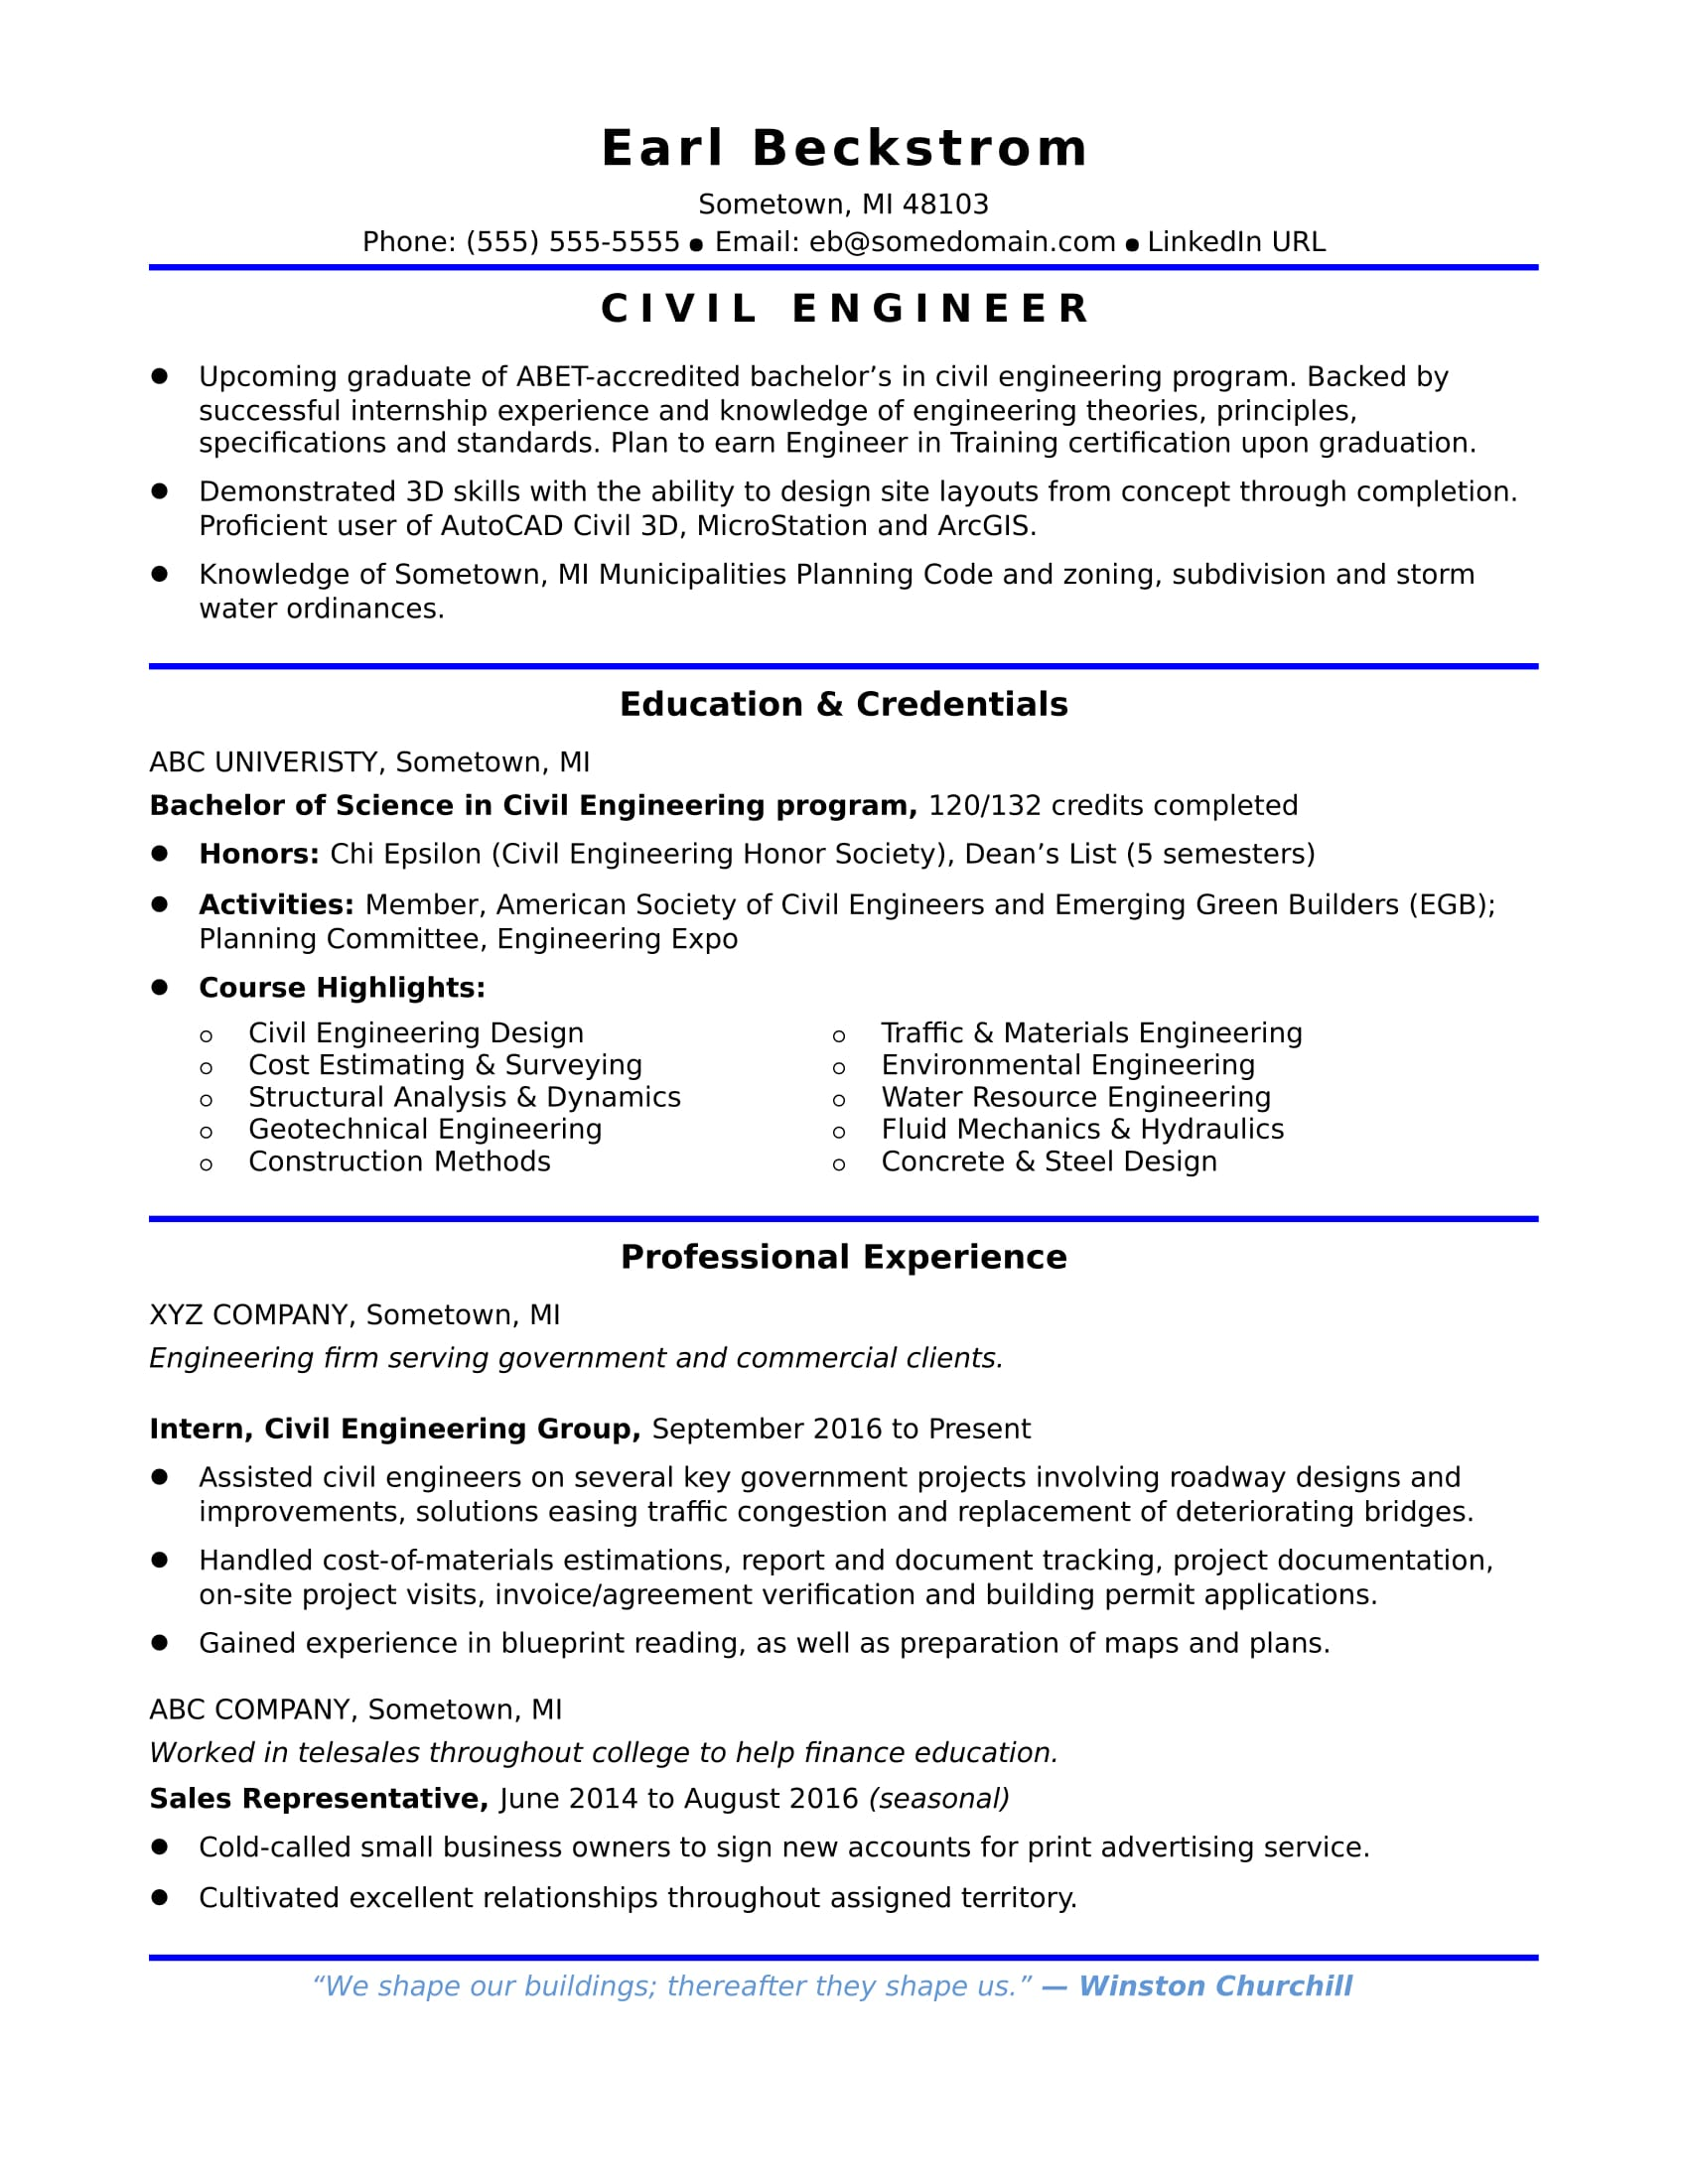 Sample Resume For An Entry Level Civil Engineer  Entry Level Resume Samples